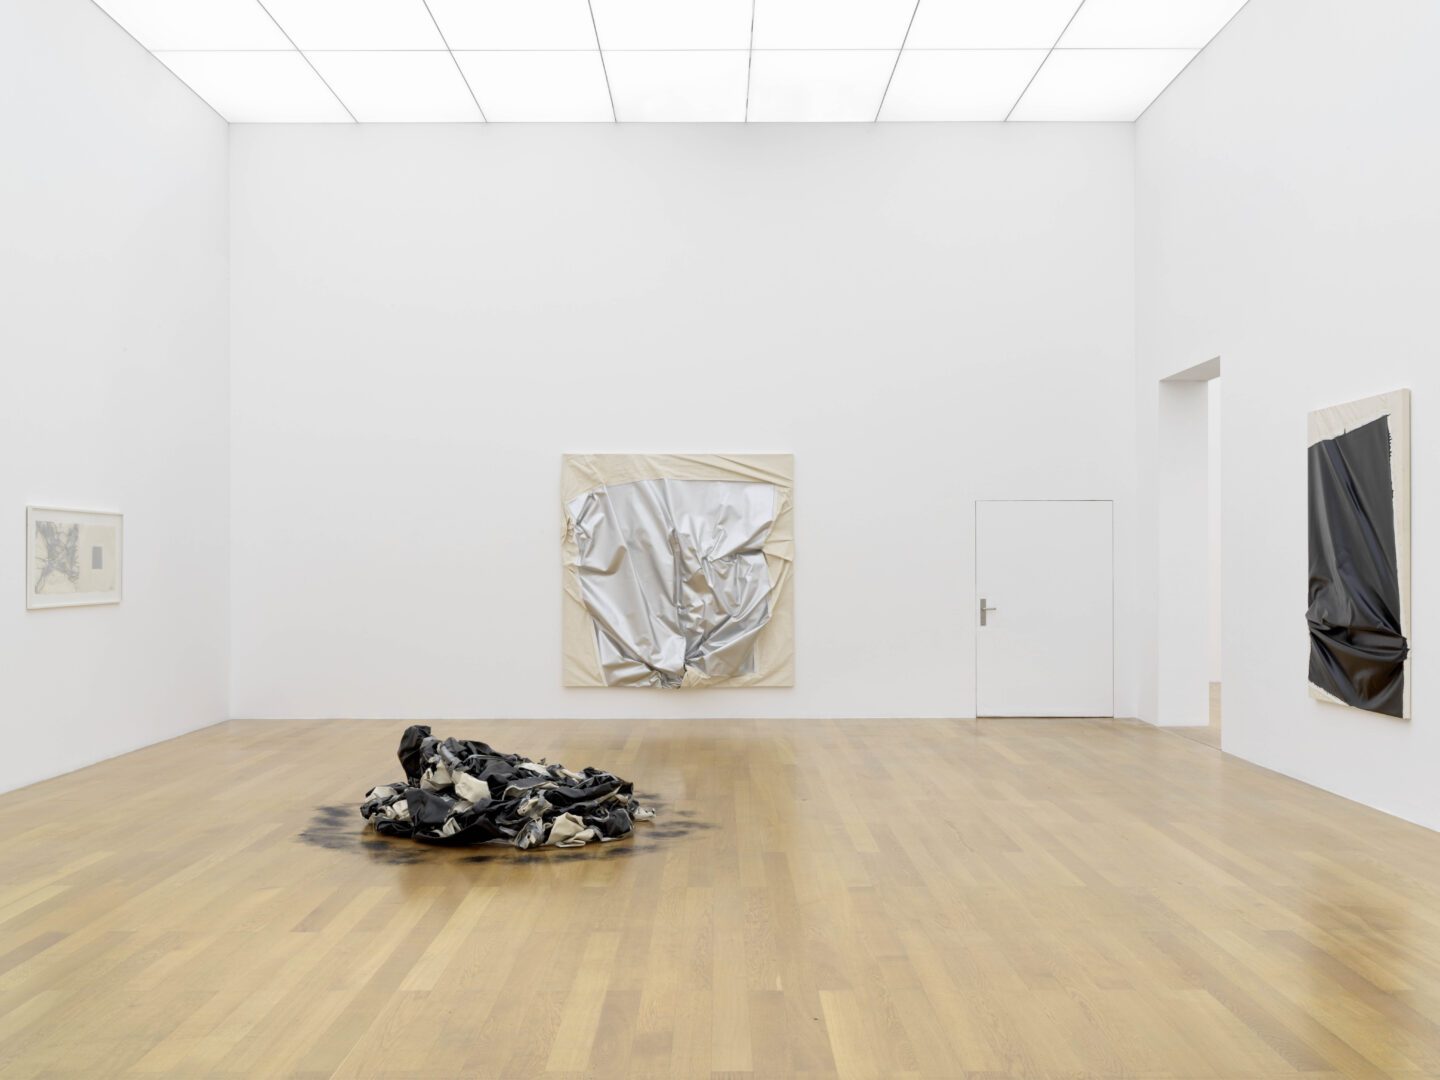 Exhibition View Steven Parrino Soloshow «Nihilism Is Love» at Kunstmuseum Liechtenstein, Liechtenstein, 2020 / Photo: Stefan Altenburger / © Kunstmuseum Liechtenstein / Courtesy: the artist and Kunstmuseum Liechtenstein